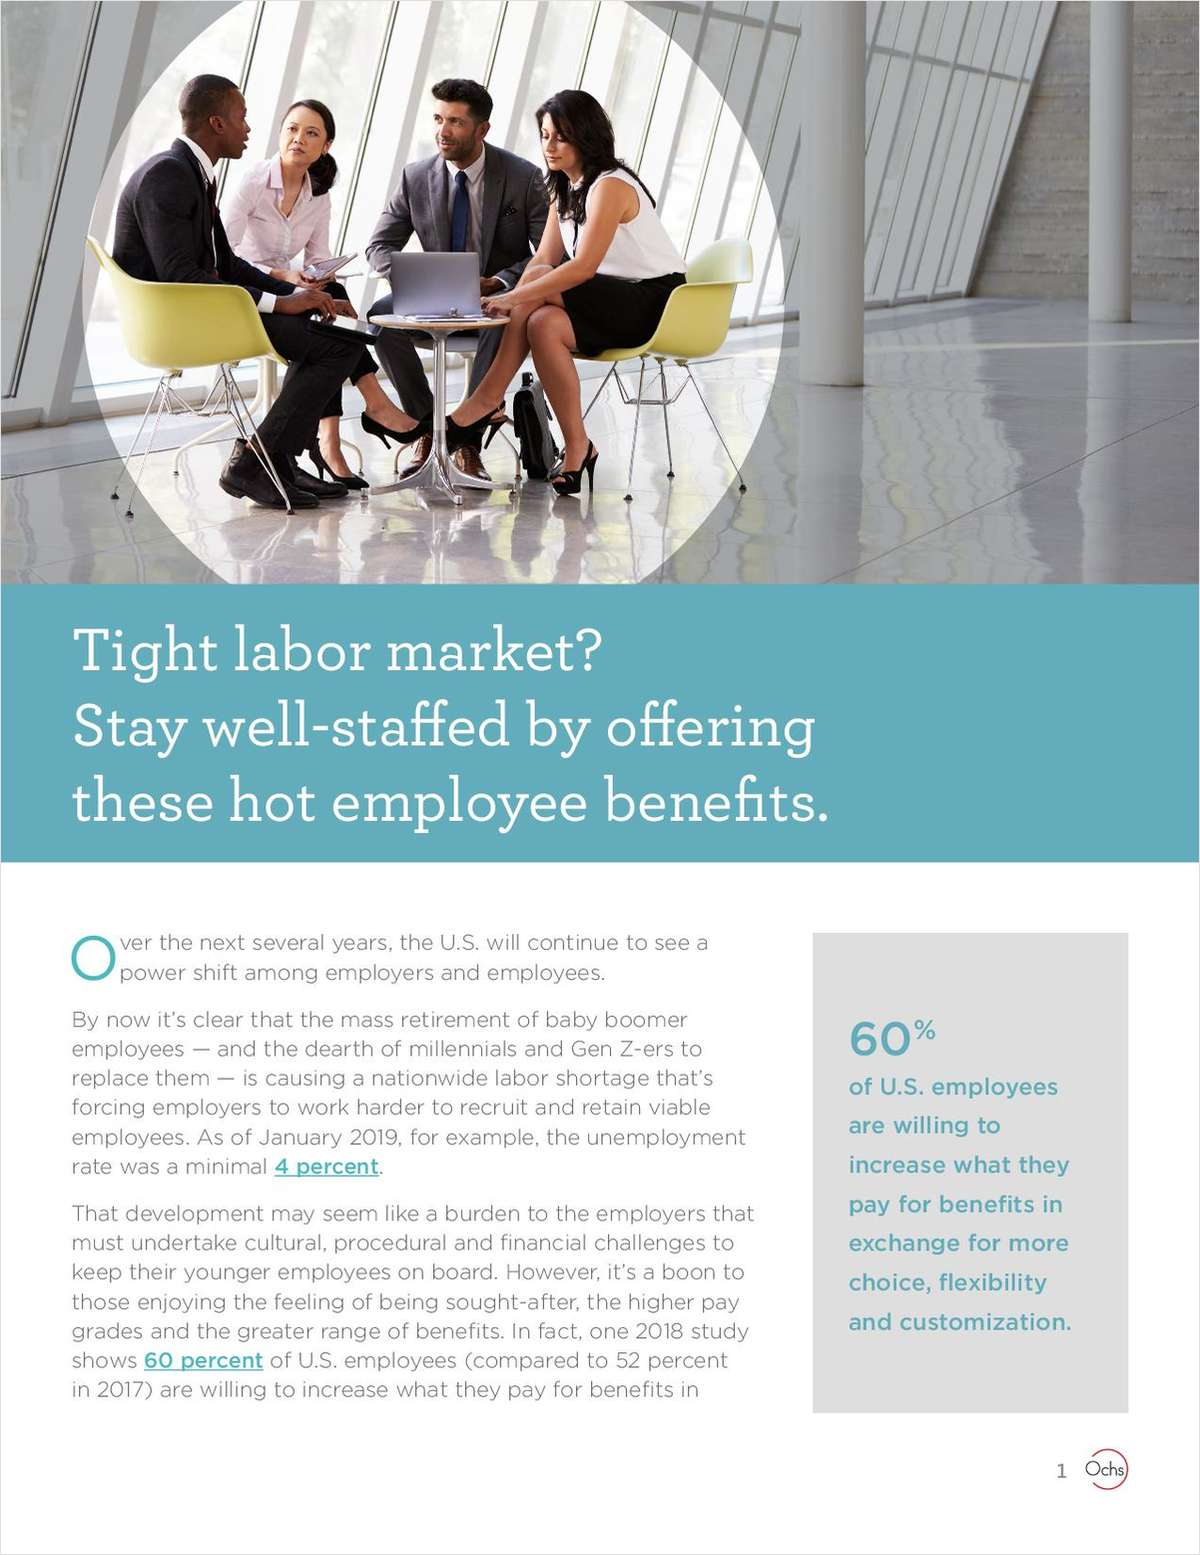 Tight Labor Market? Stay Well-Staffed by Offering These Hot Employee Benefits